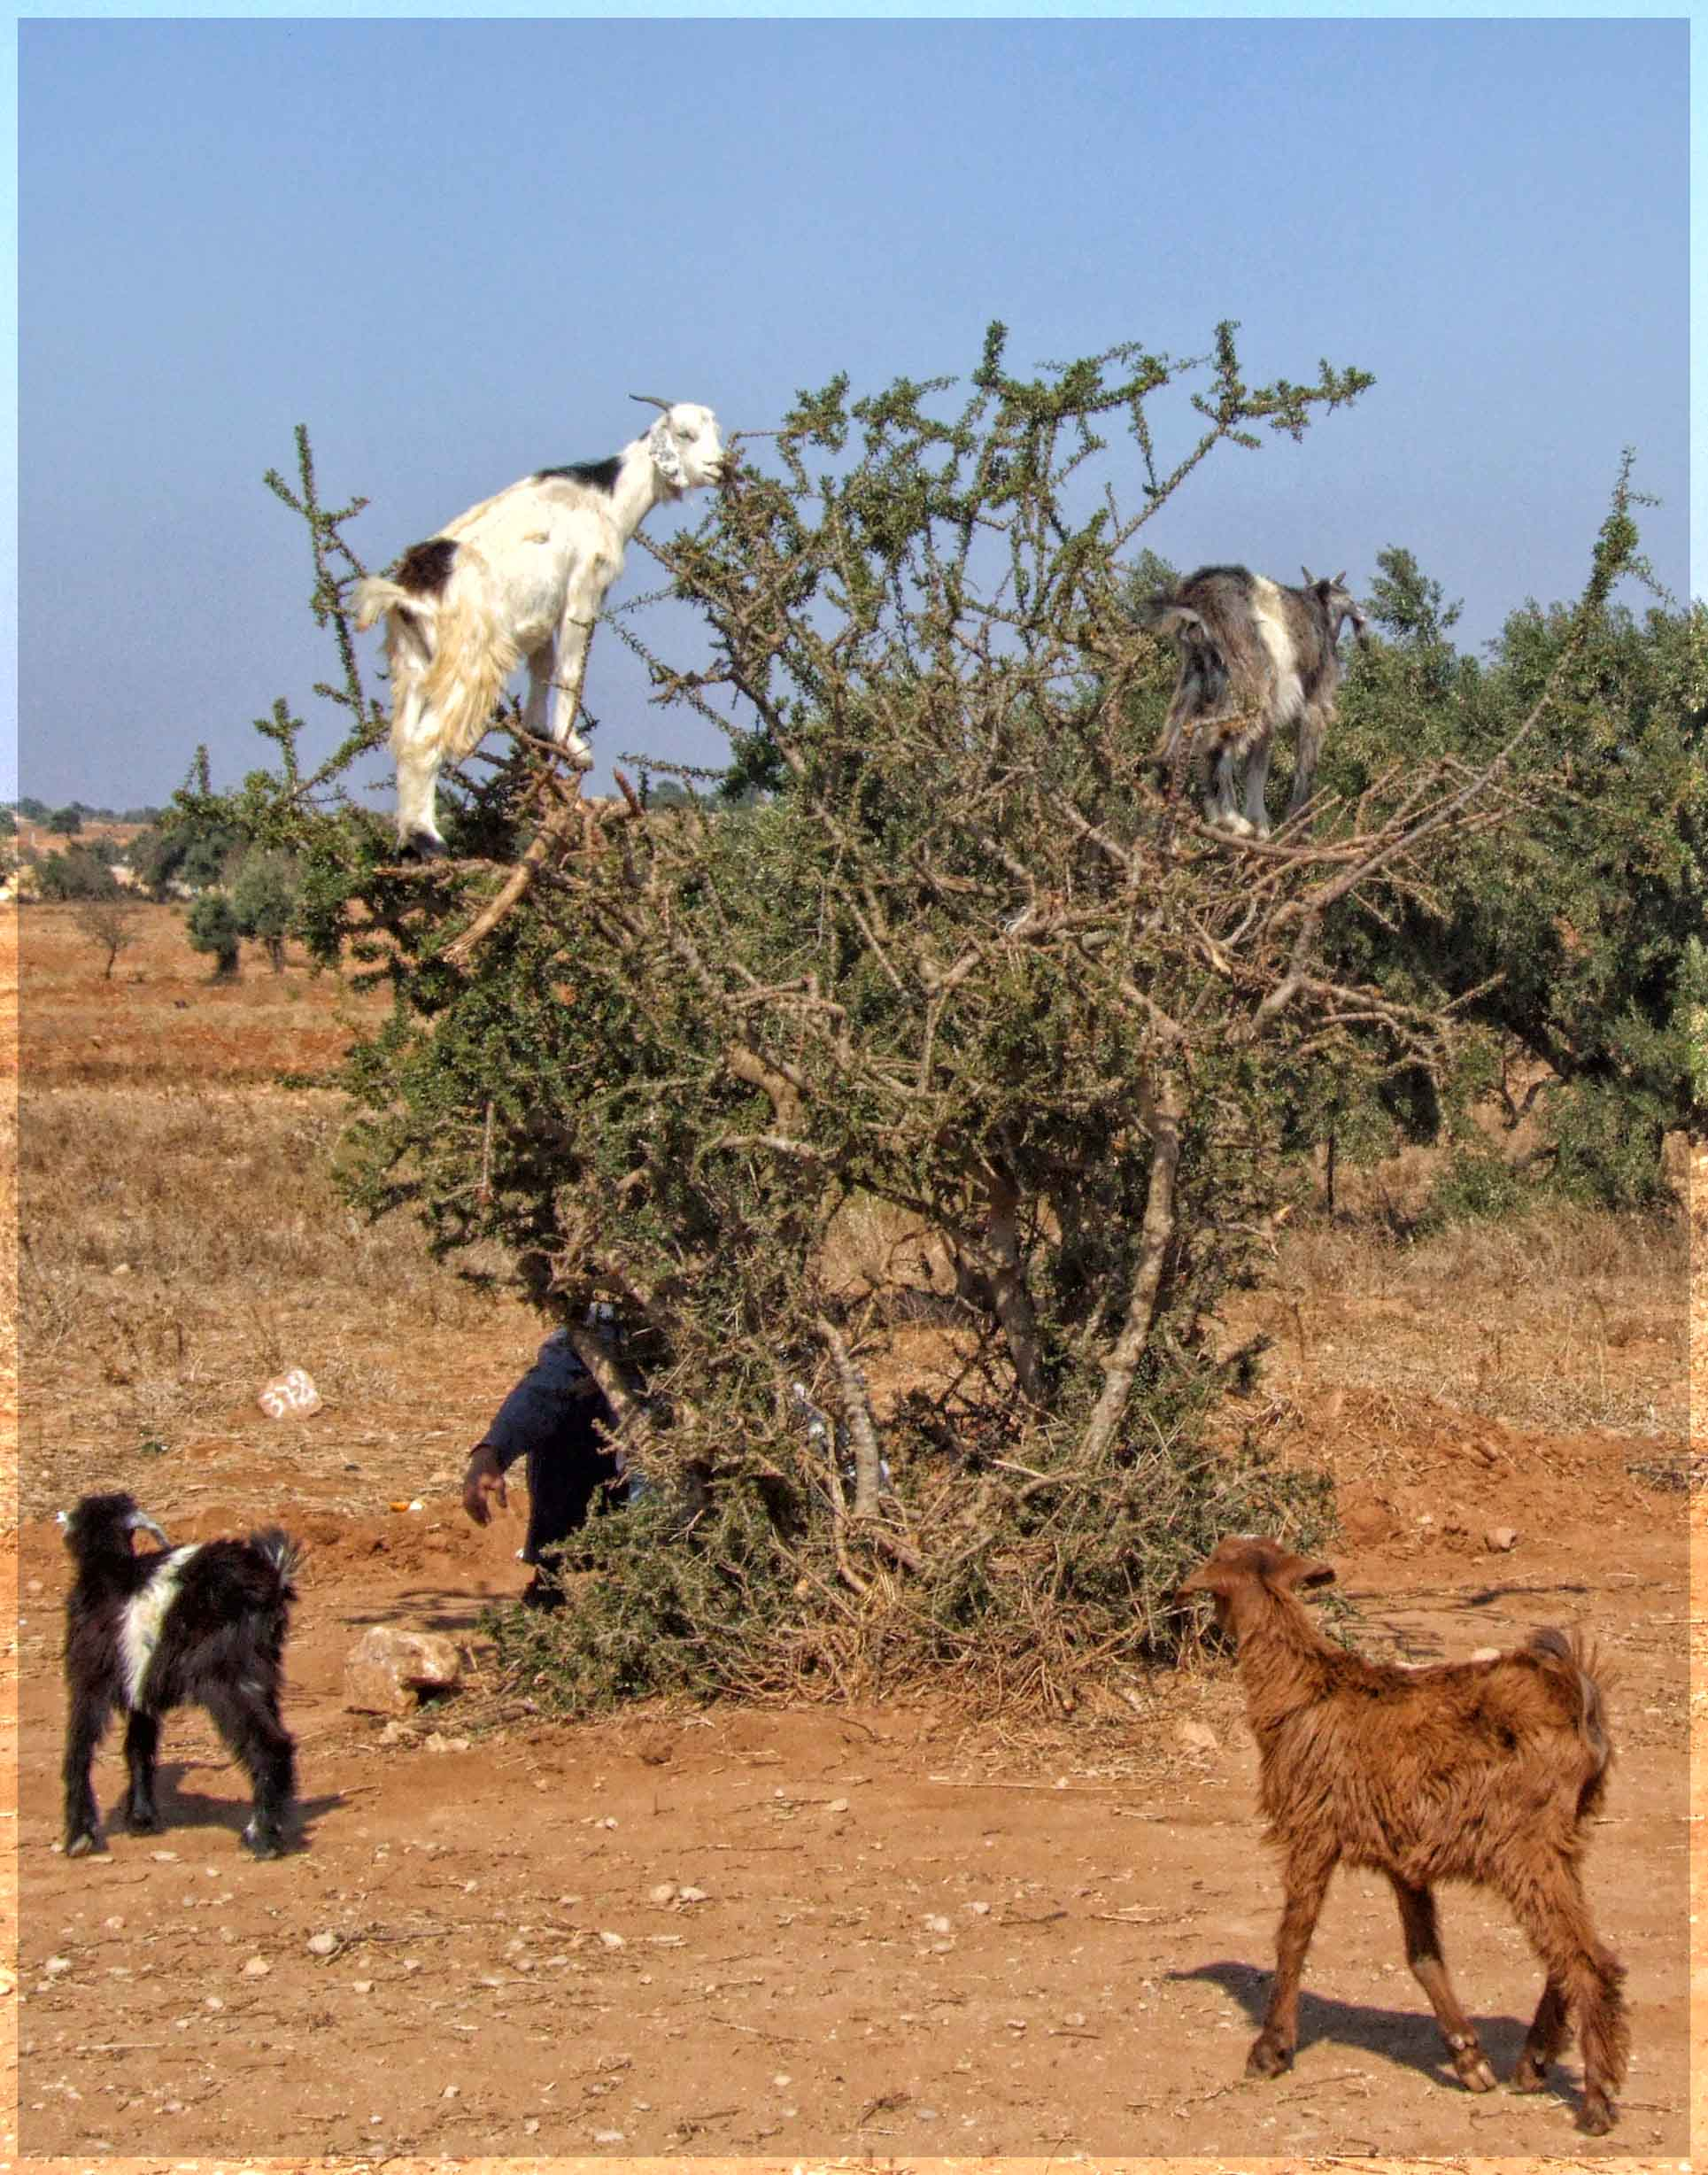 Scrubby bush with goats in and around it